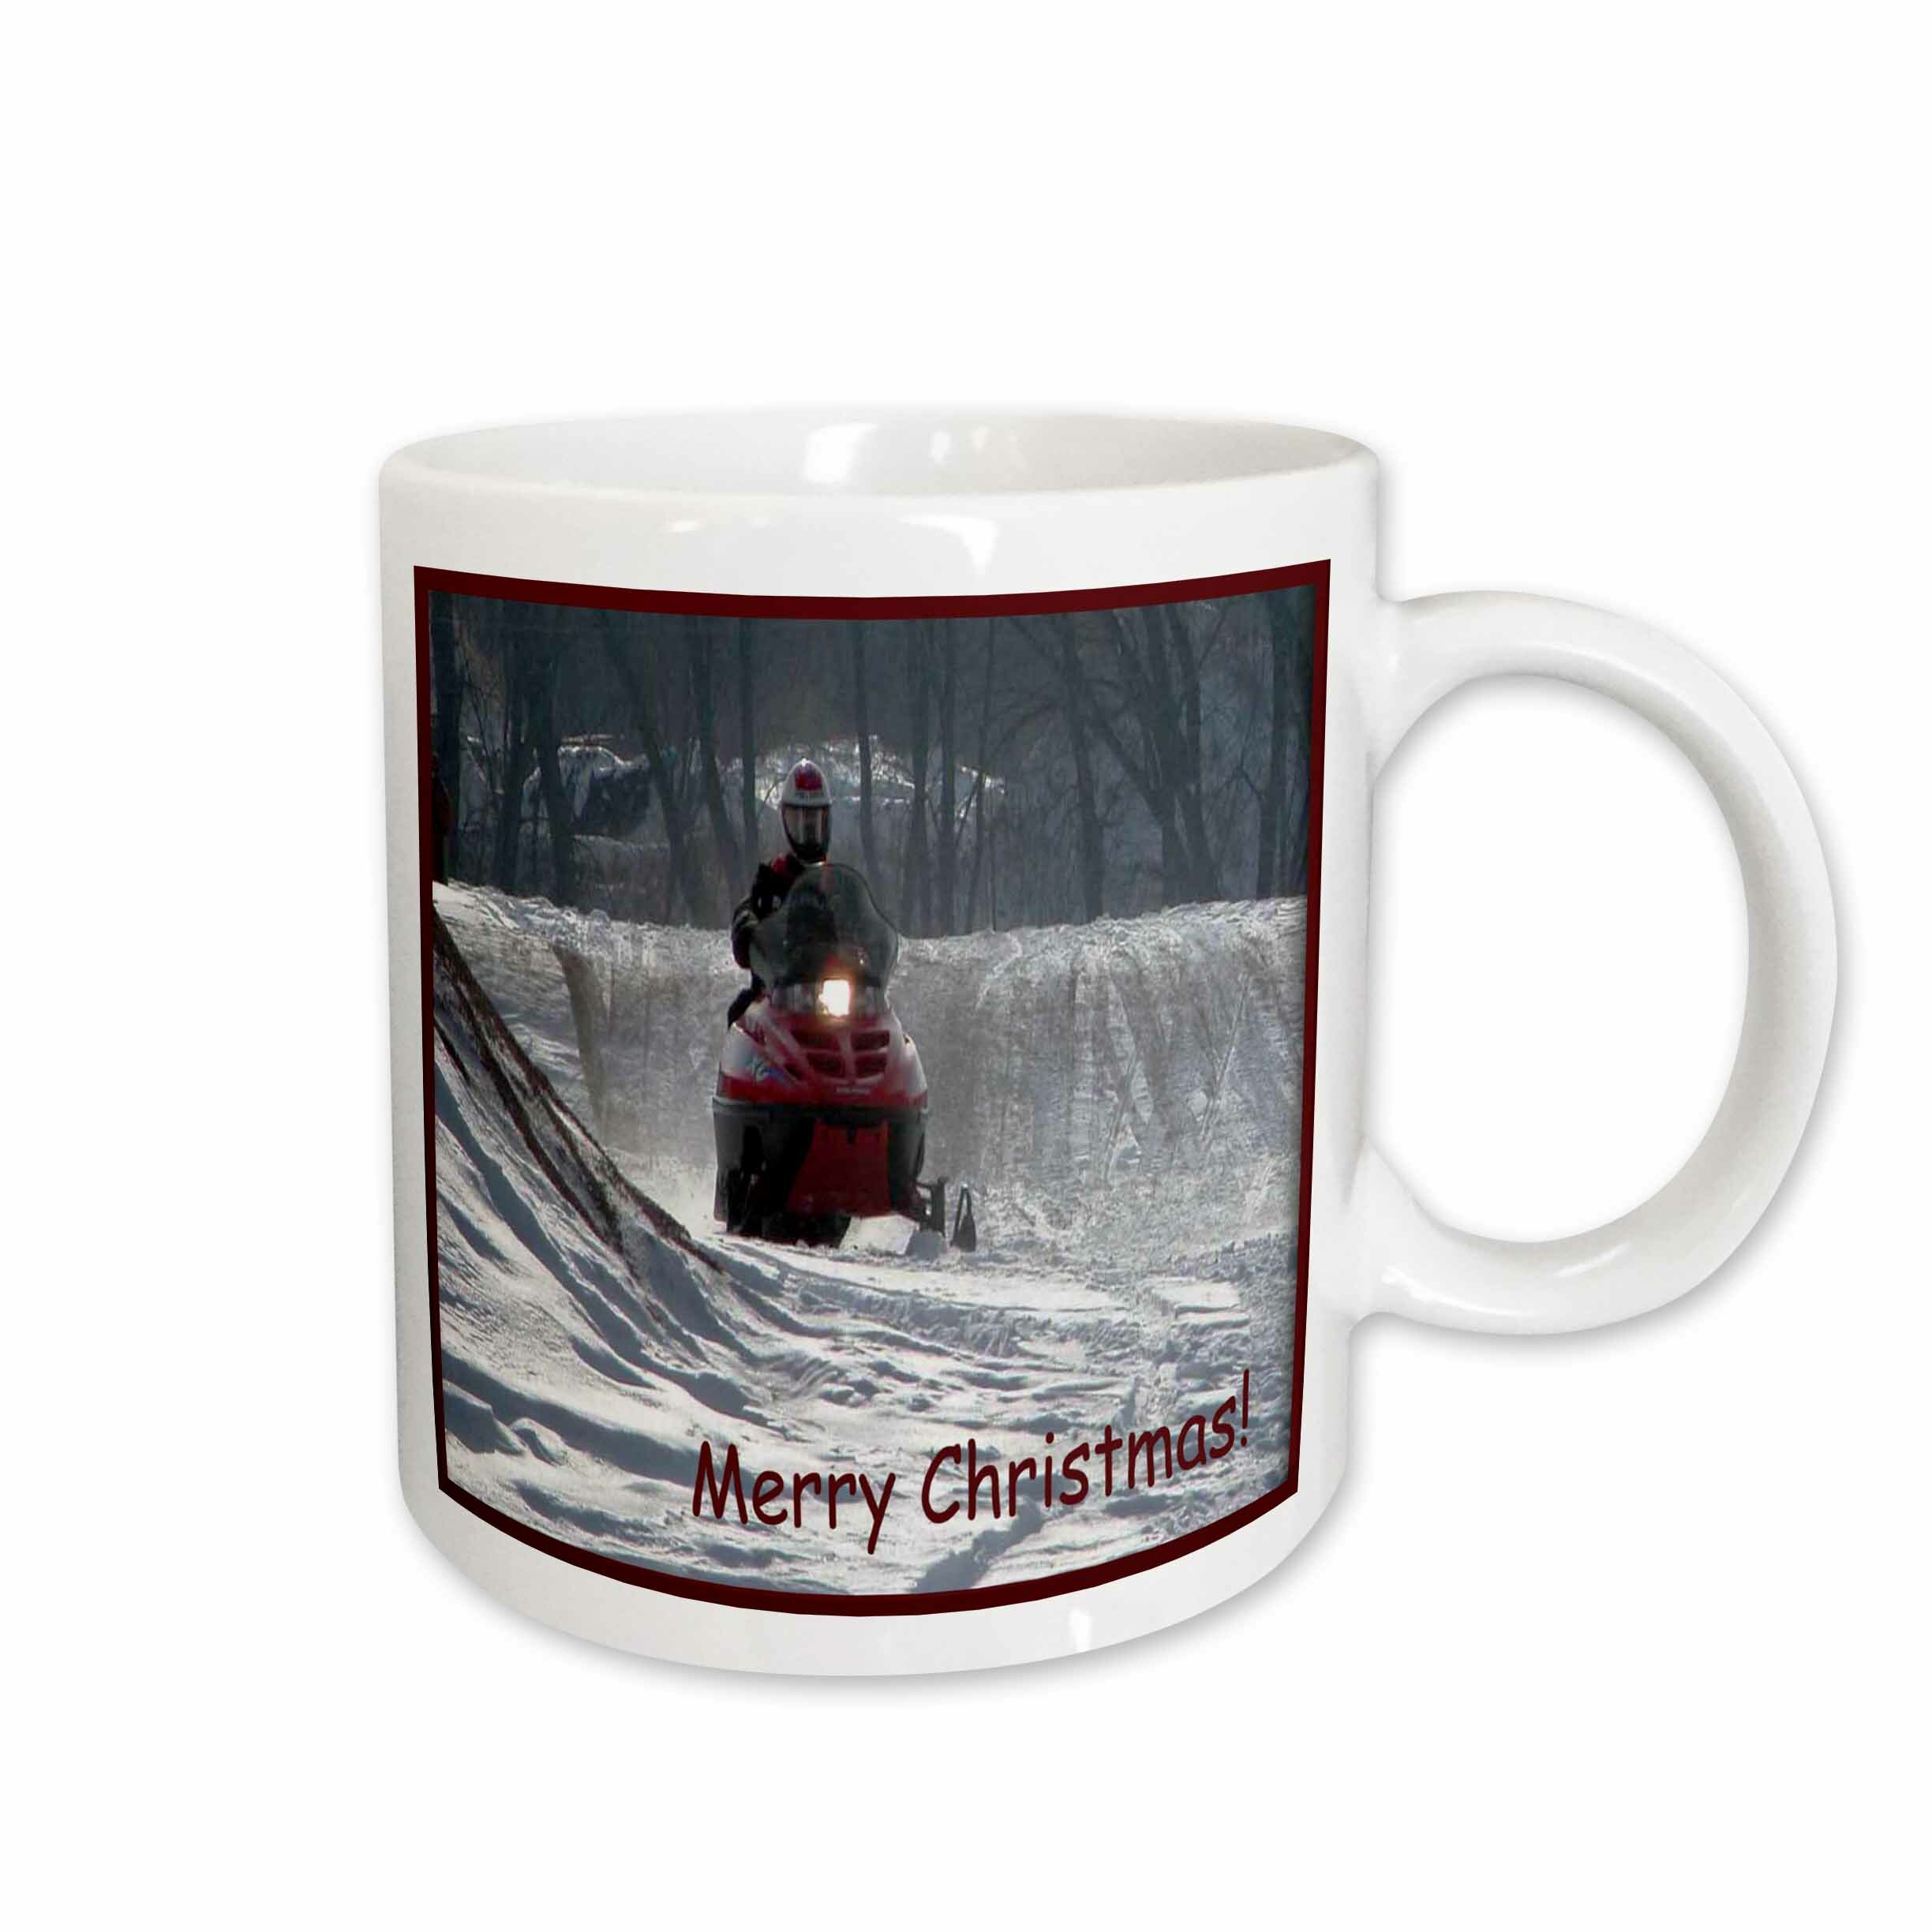 East Urban Home Snowmobile Rider Merry Christmas Coffee Mug Wayfair